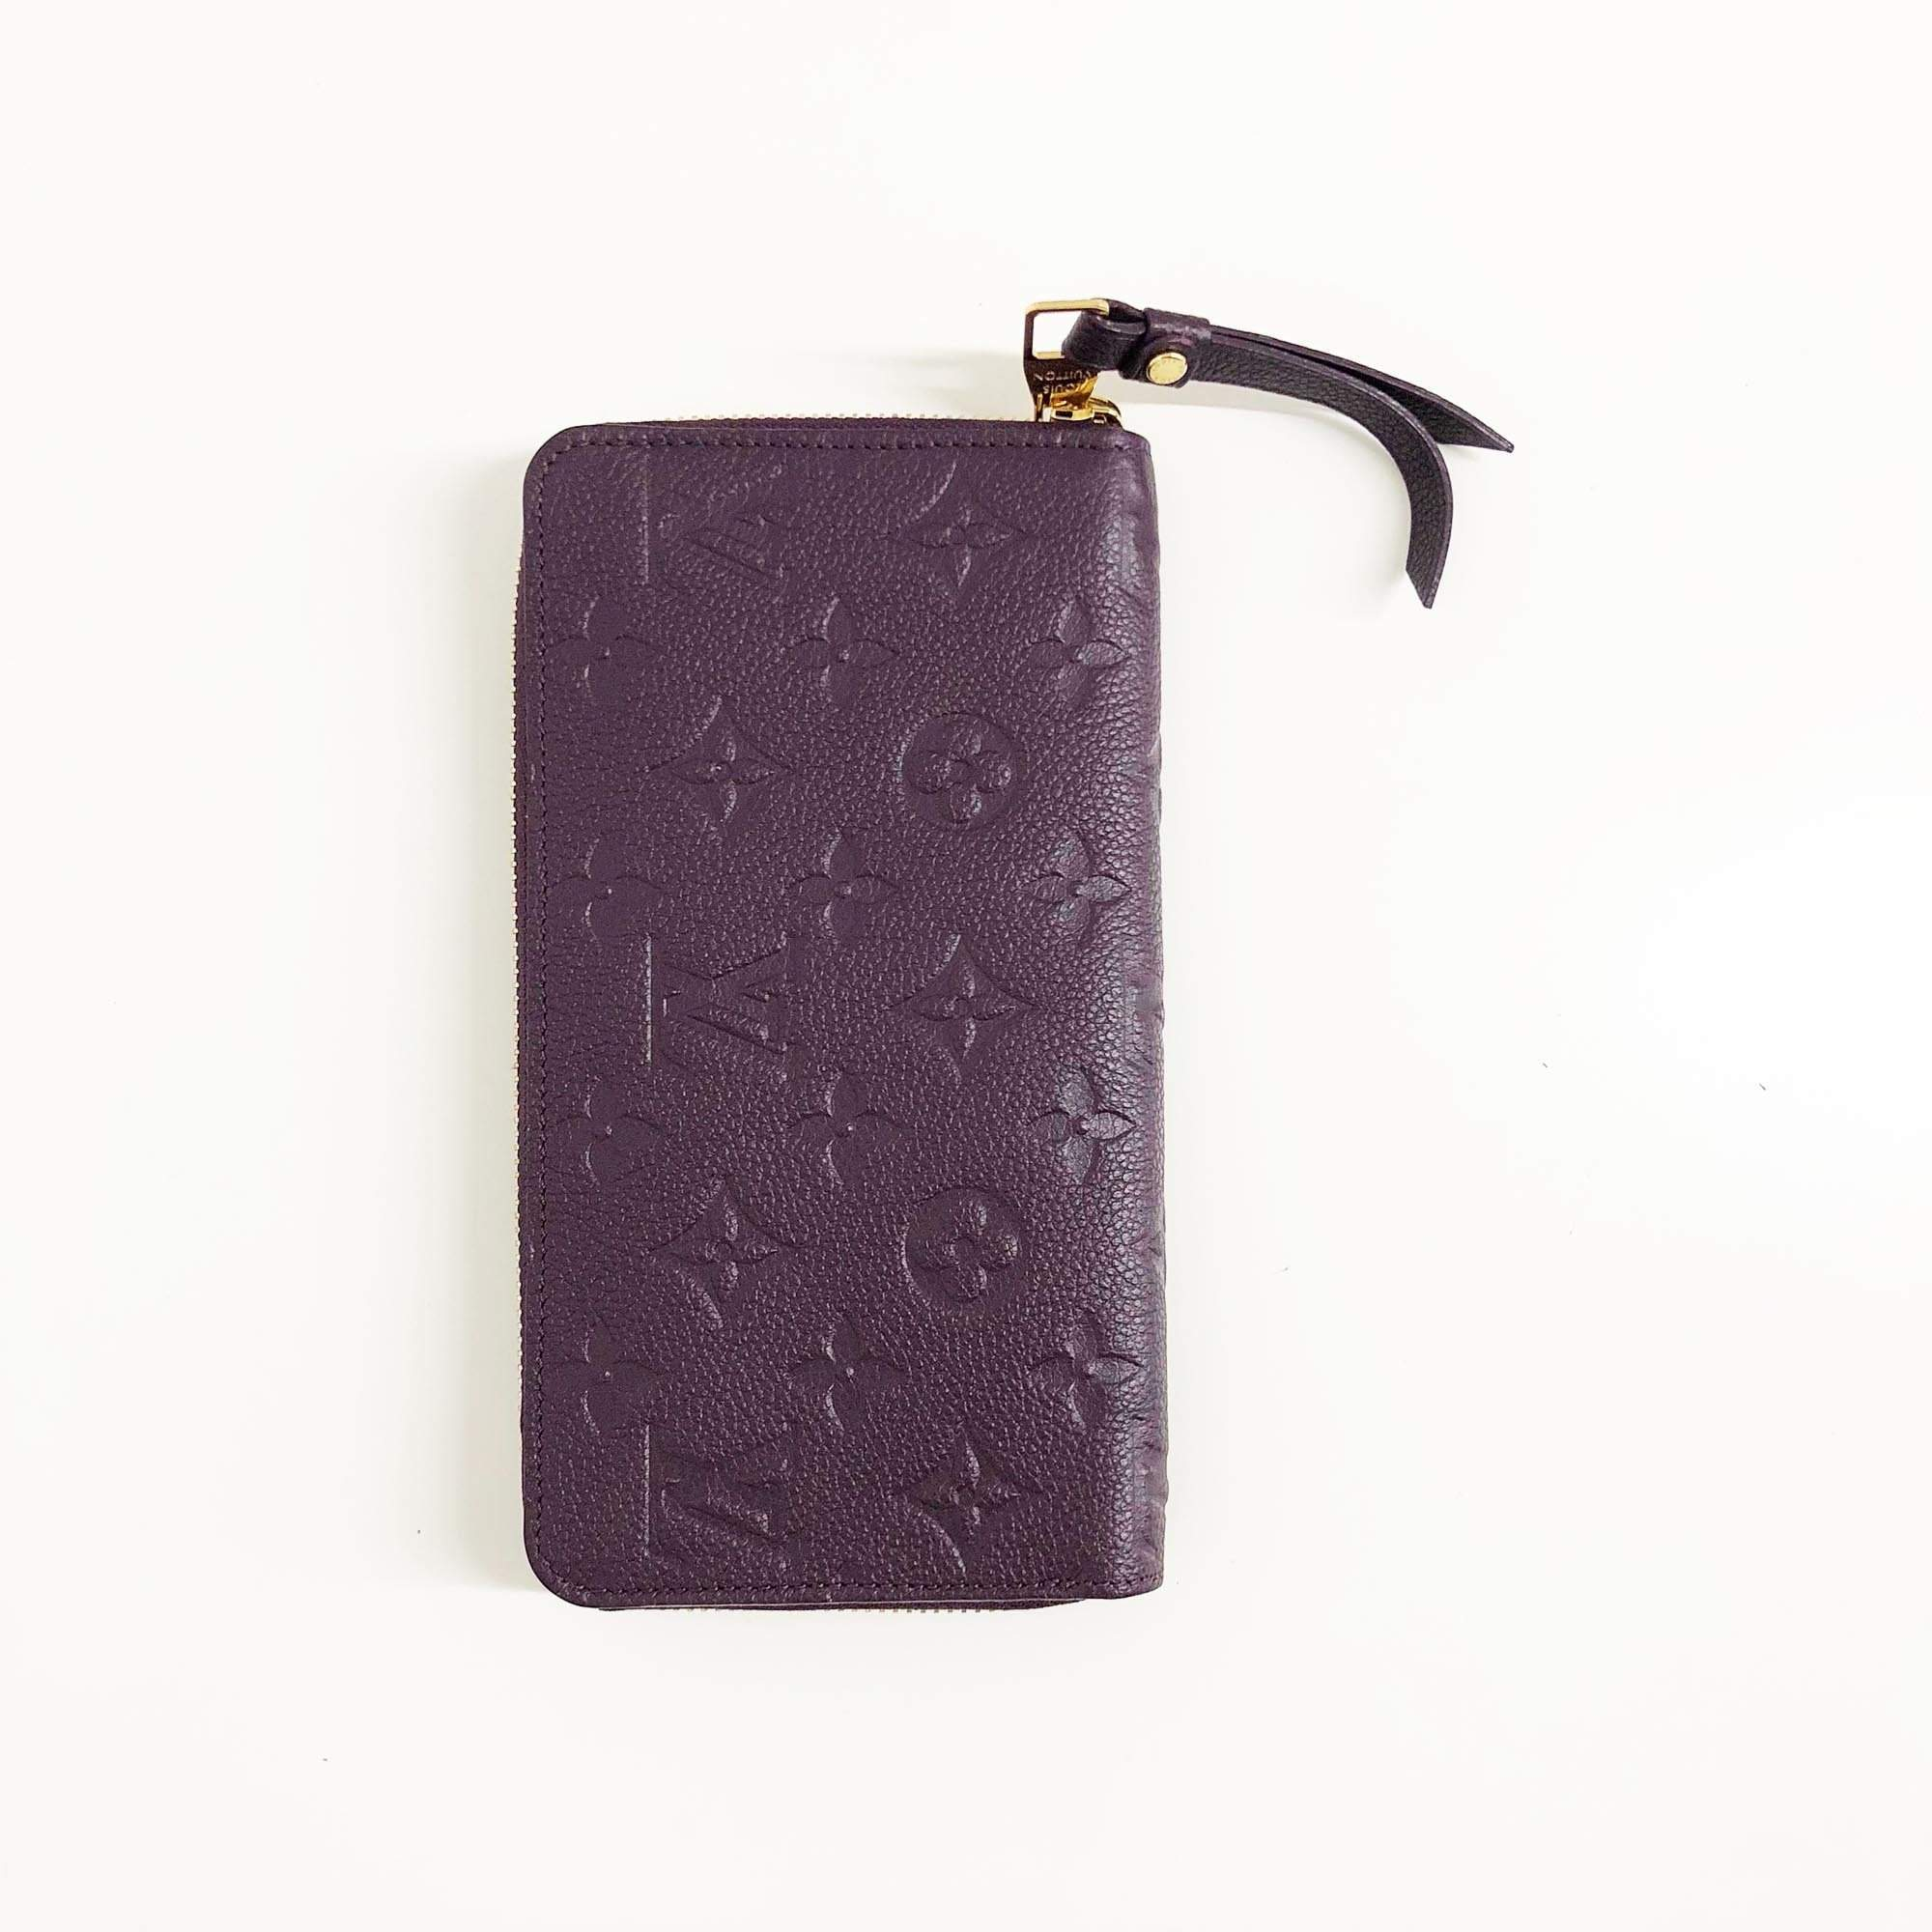 Louis Vuitton Empreinte Clemence Burgundy Wallet